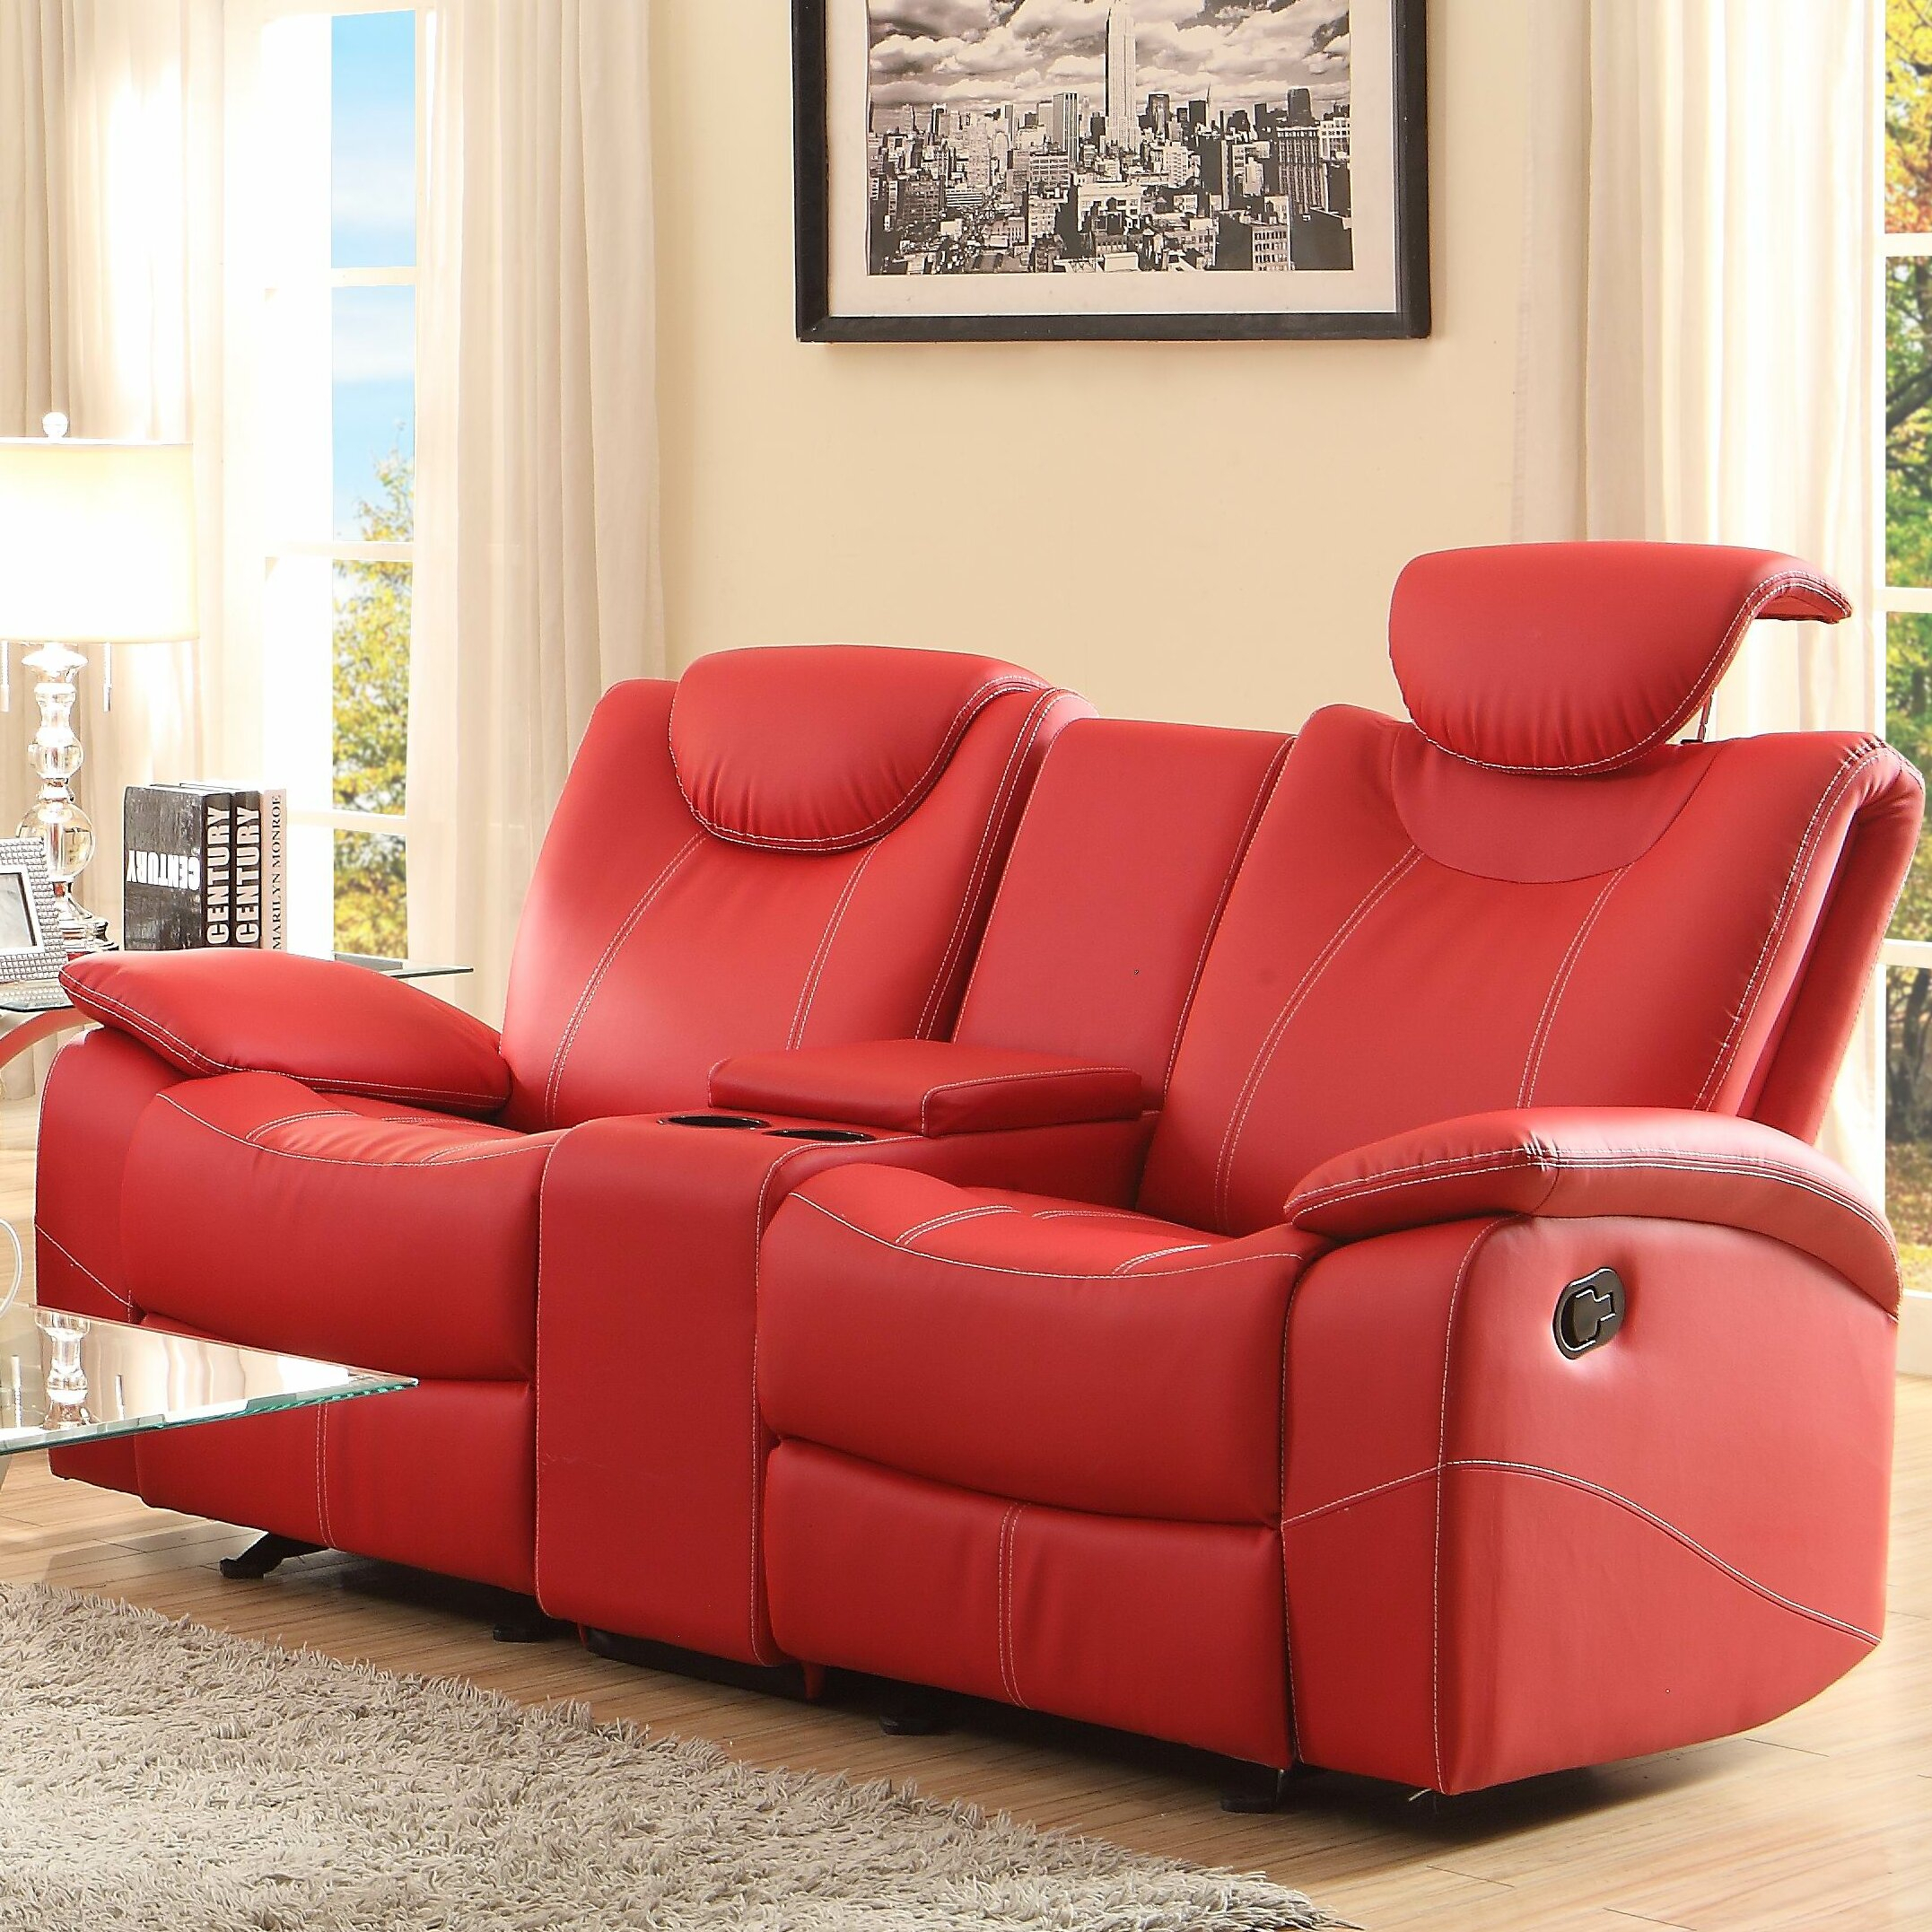 Latitude Run Erik Double Glider Reclining Loveseat & Reviews For Double Glider Loveseats (Image 16 of 25)